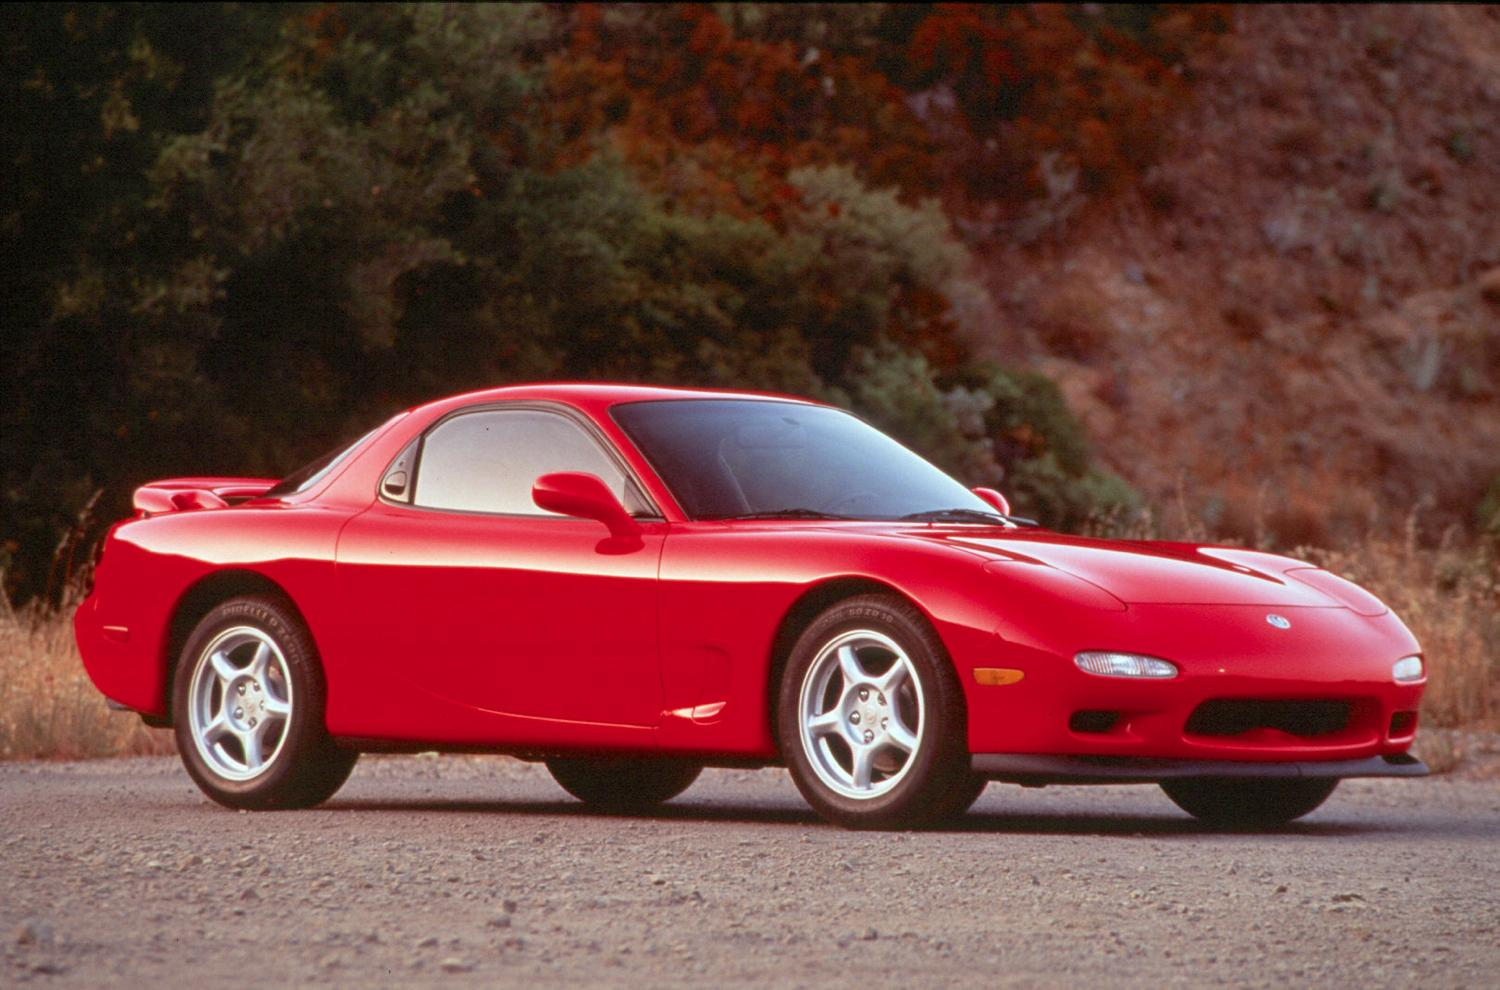 mazda might celebrate its 100th birthday with the reveal of a new rx-7